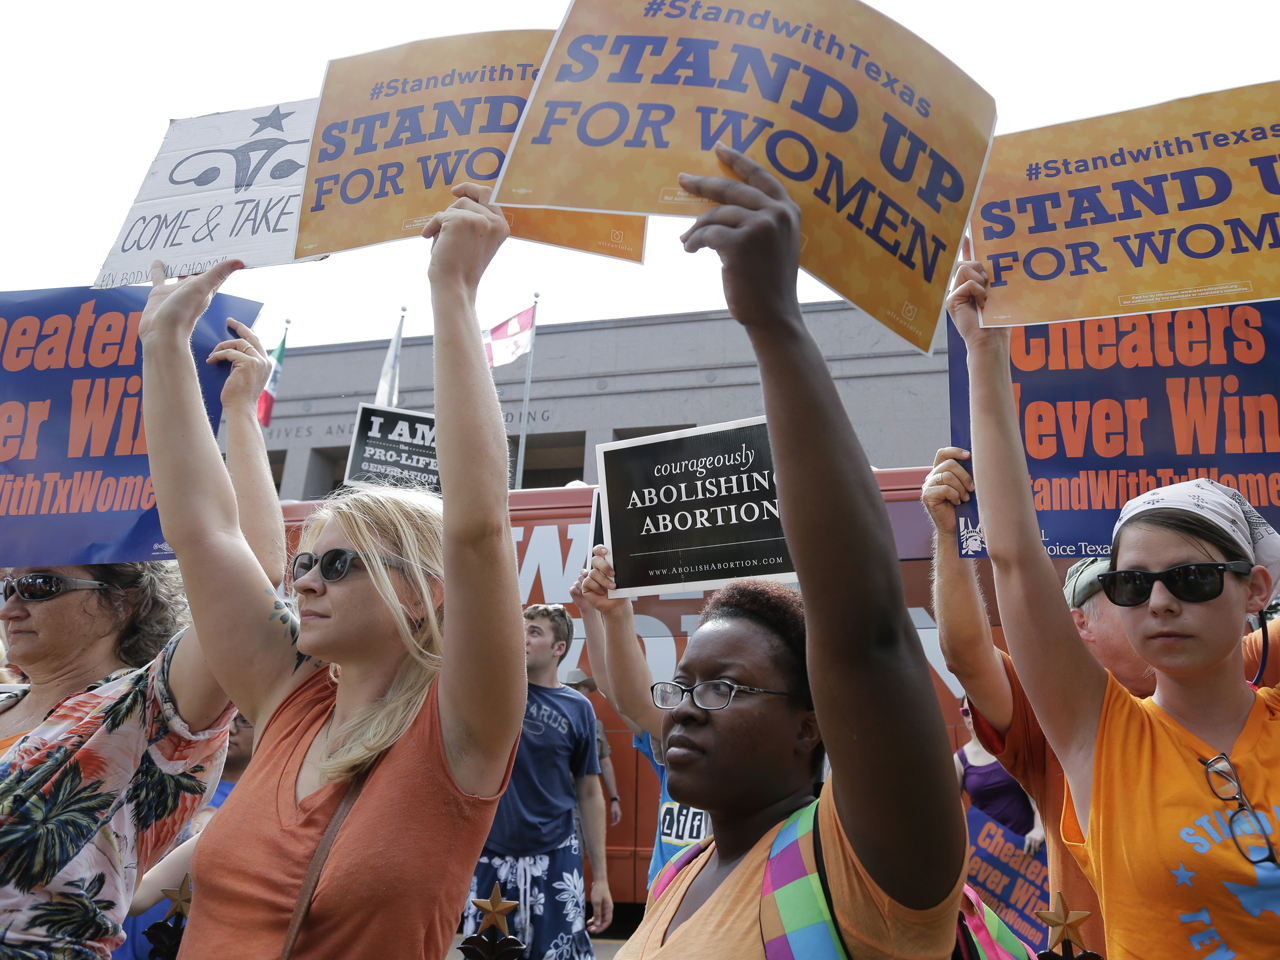 100,000 Texas women have tried to self-induce abortion, study finds